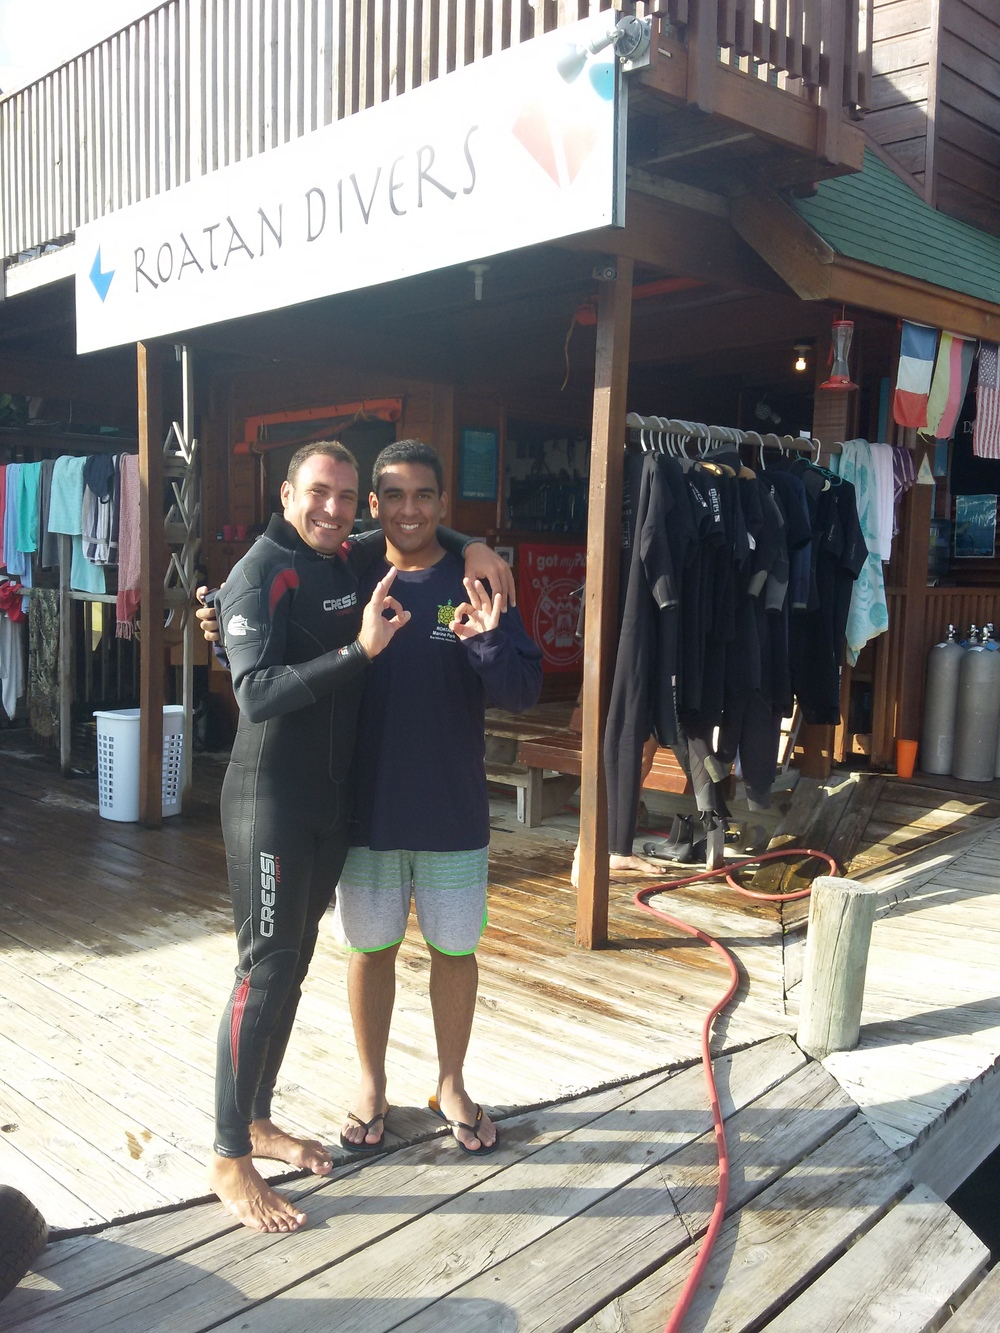 Federico PADI Open Water e-Learning Roatan Divers